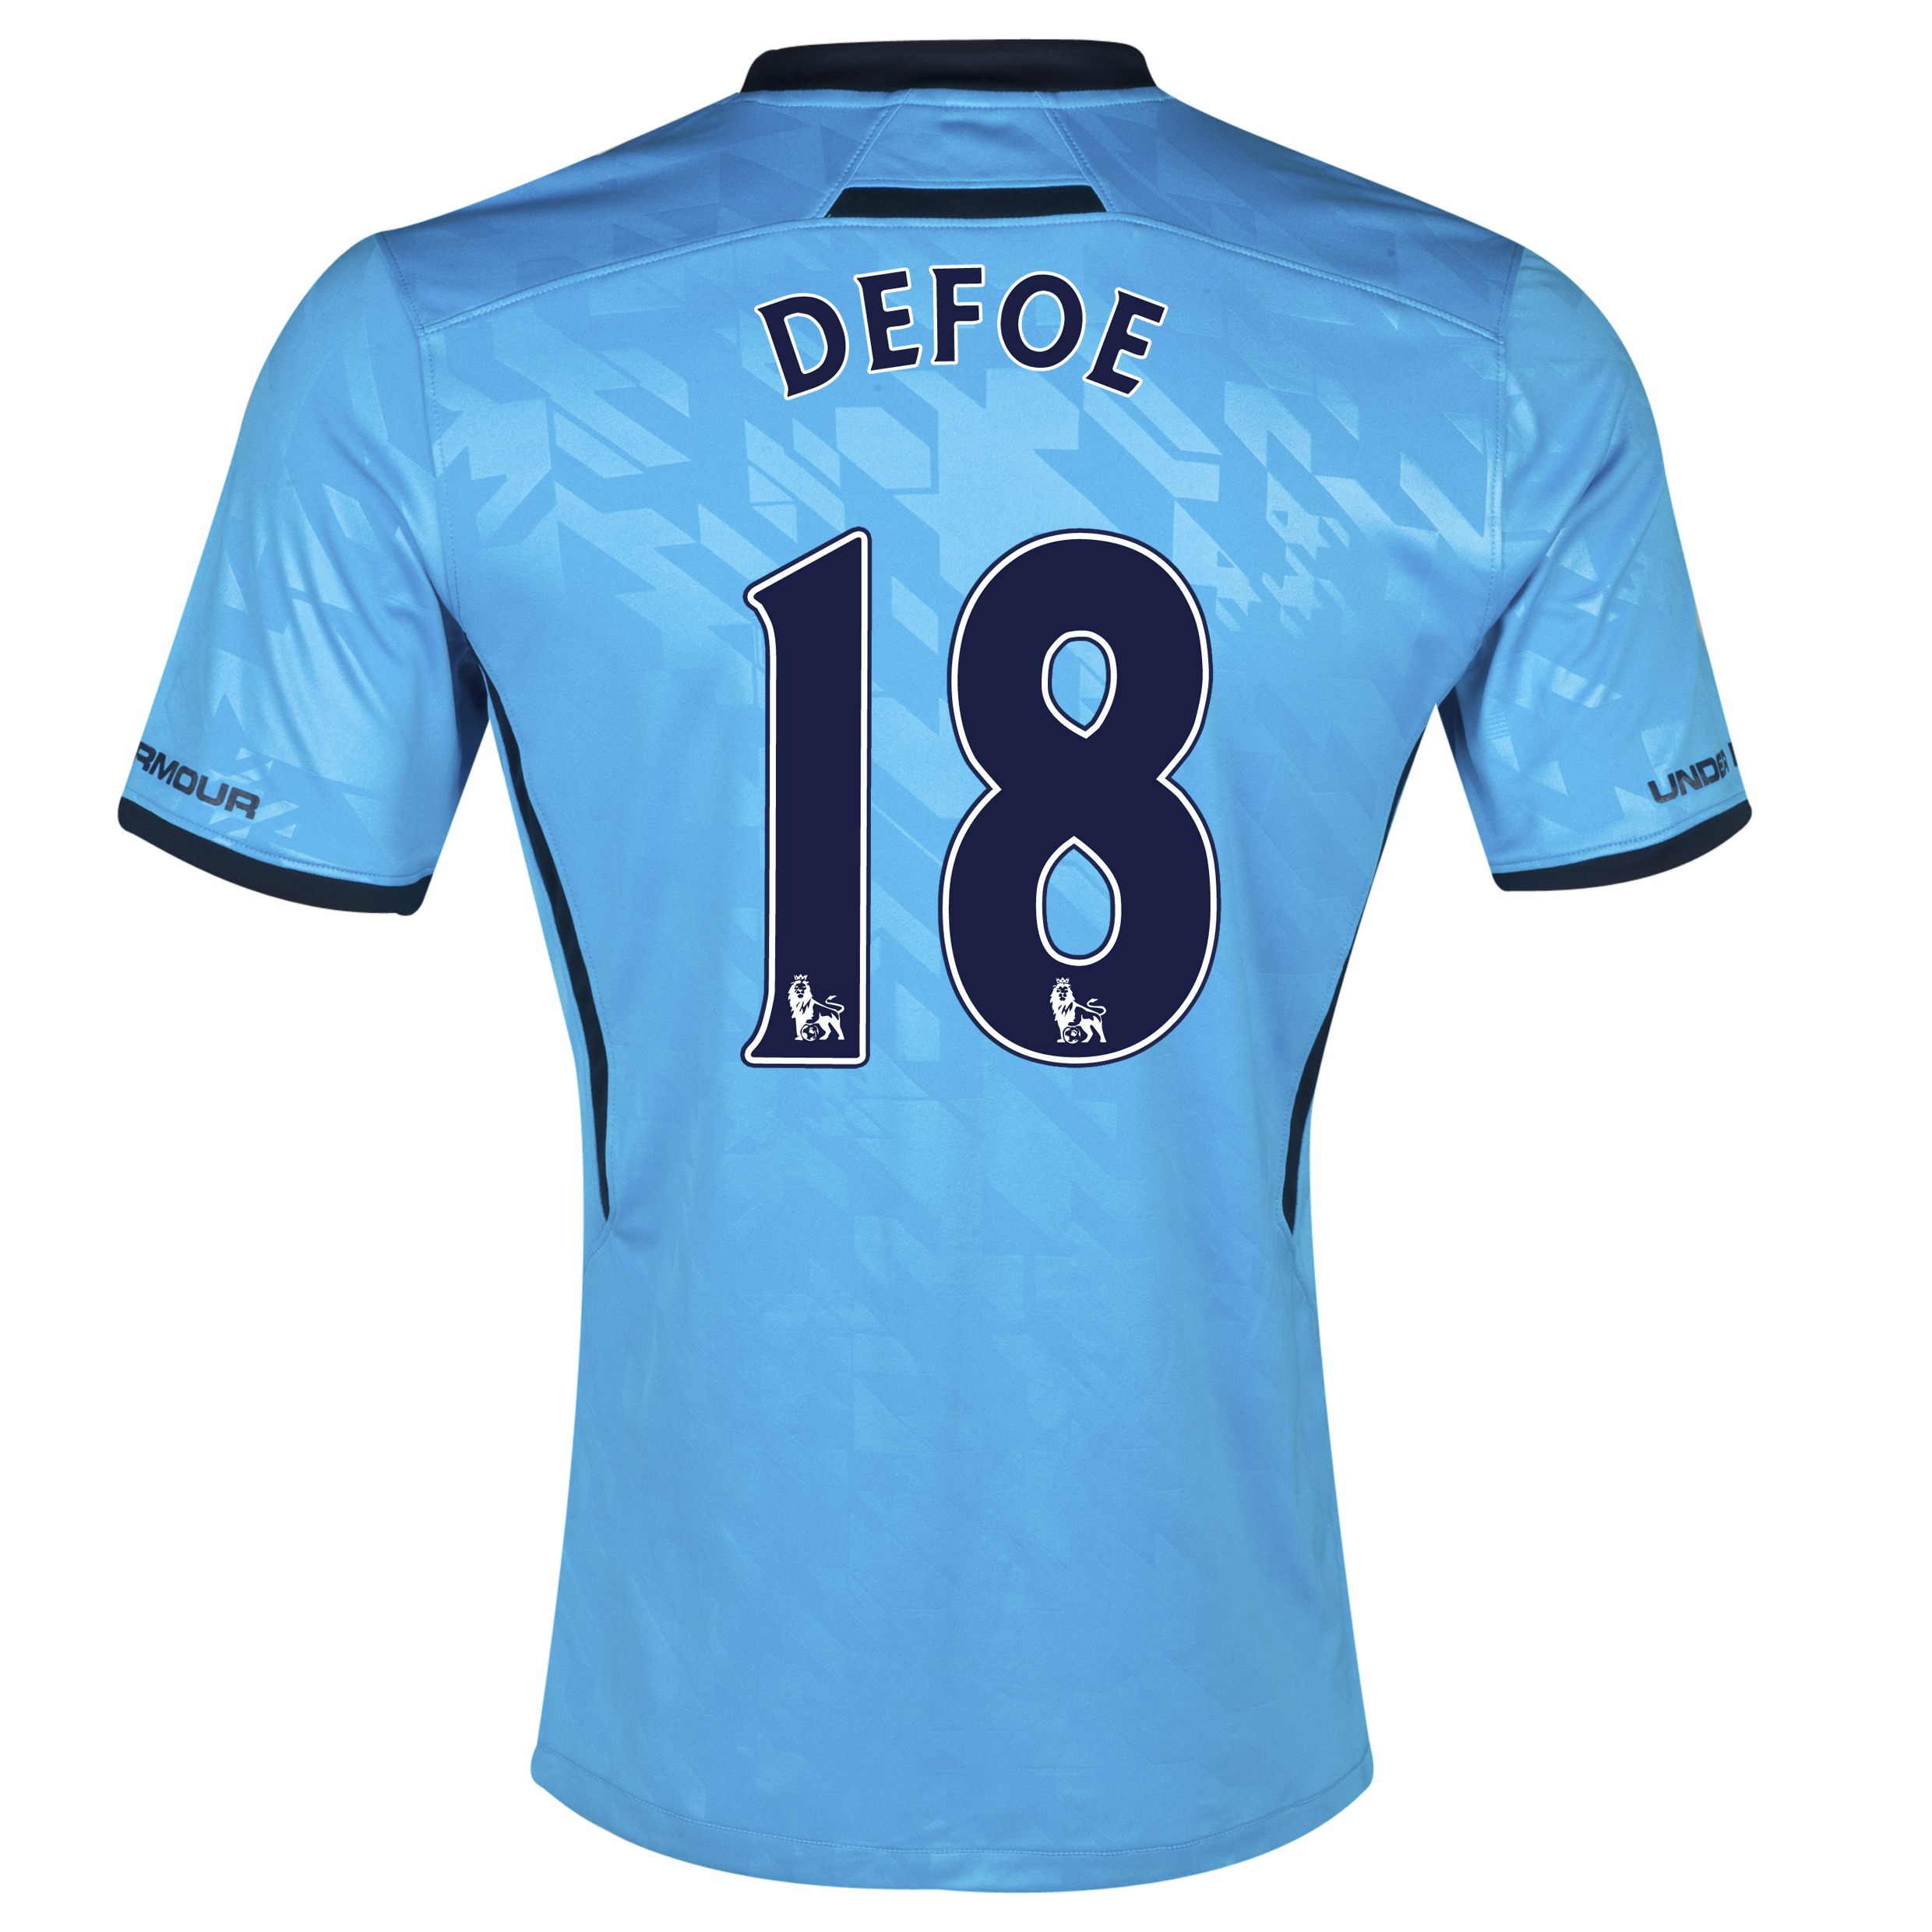 Tottenham Hotspur Away Shirt 2013/14 with Defoe 18 printing